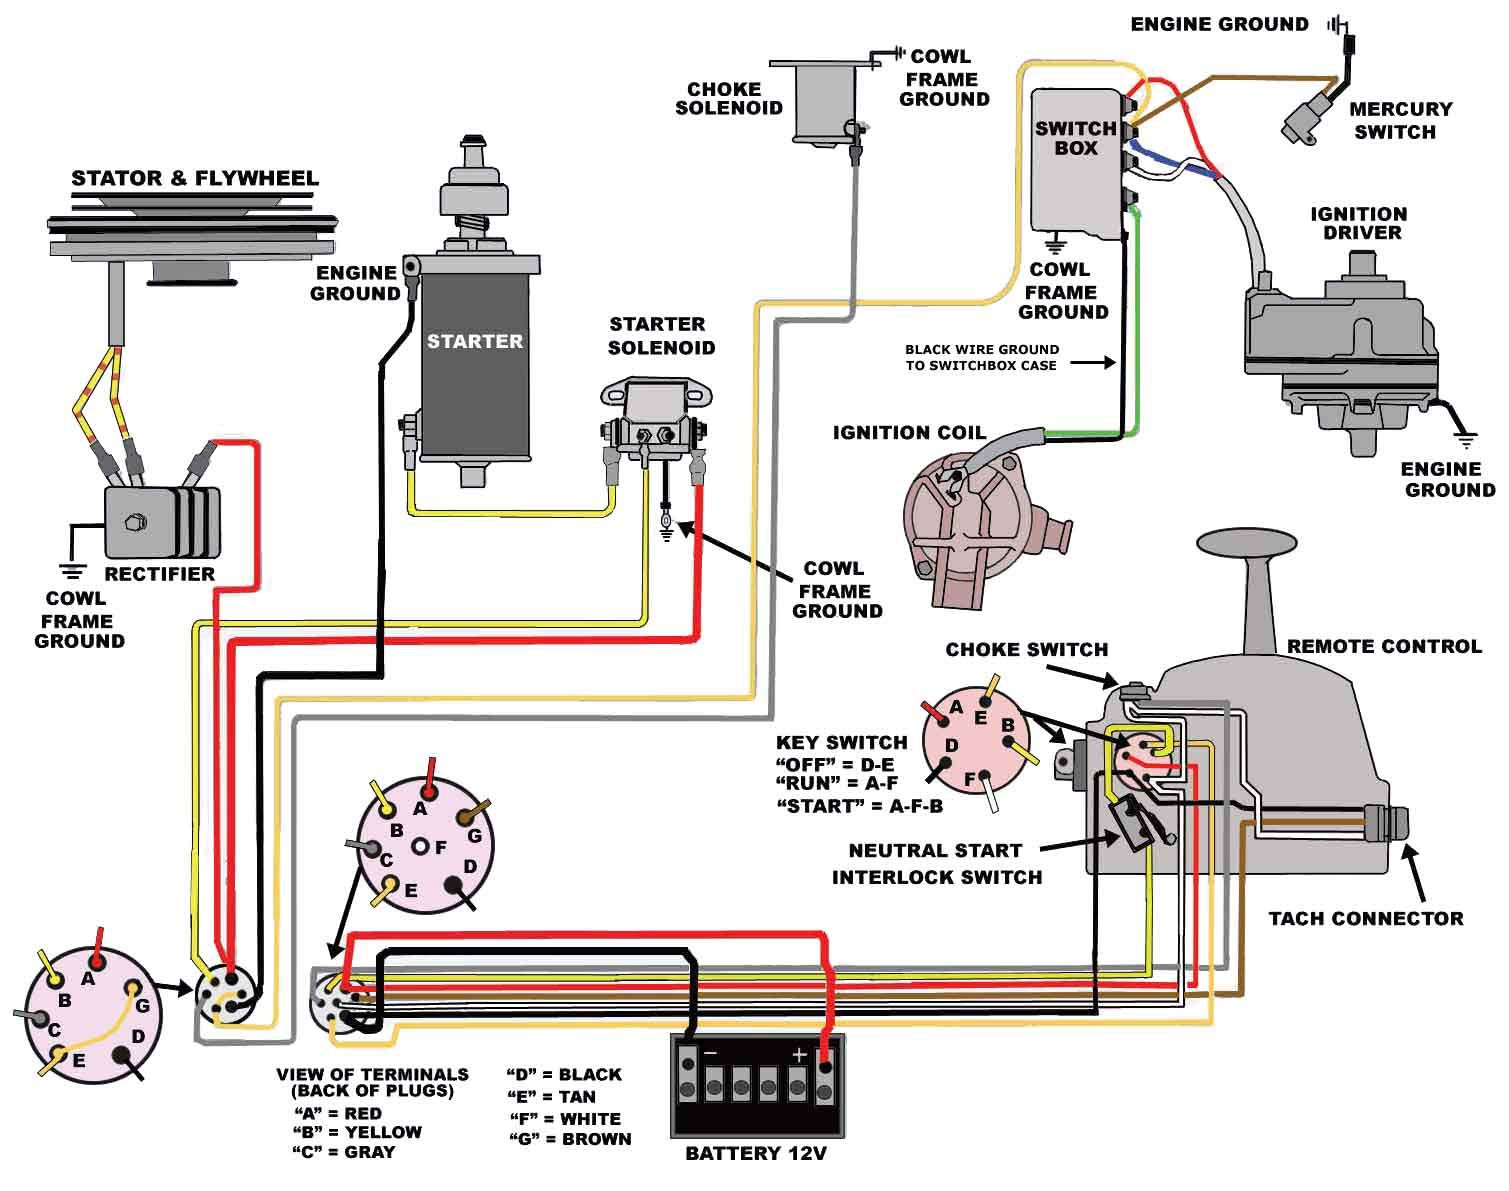 small resolution of 50 merc fuel sending unit wiring diagram wiring diagram third level rh 11 2 13 jacobwinterstein com boat fuel sending unit wiring diagram marine fuel